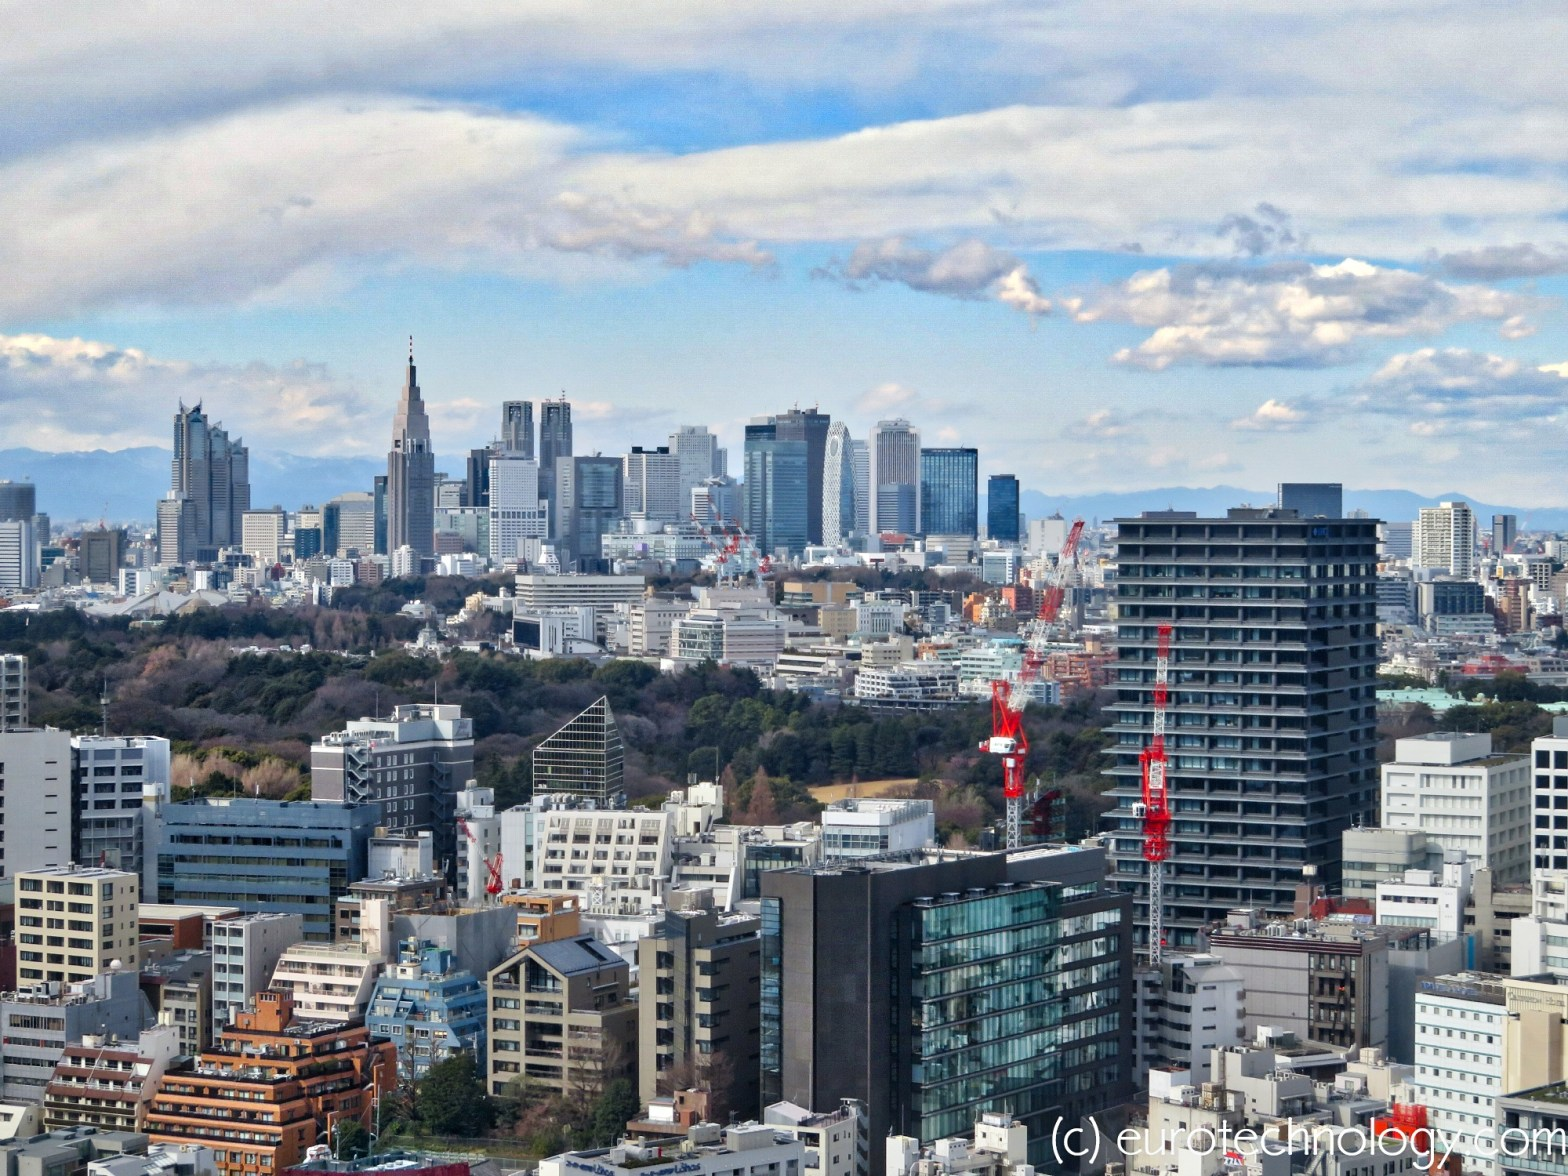 Corporate governance reforms in Japan, Daiwa Anglo-Japanese Foundation HQ London, Tuesday 16 January 2018